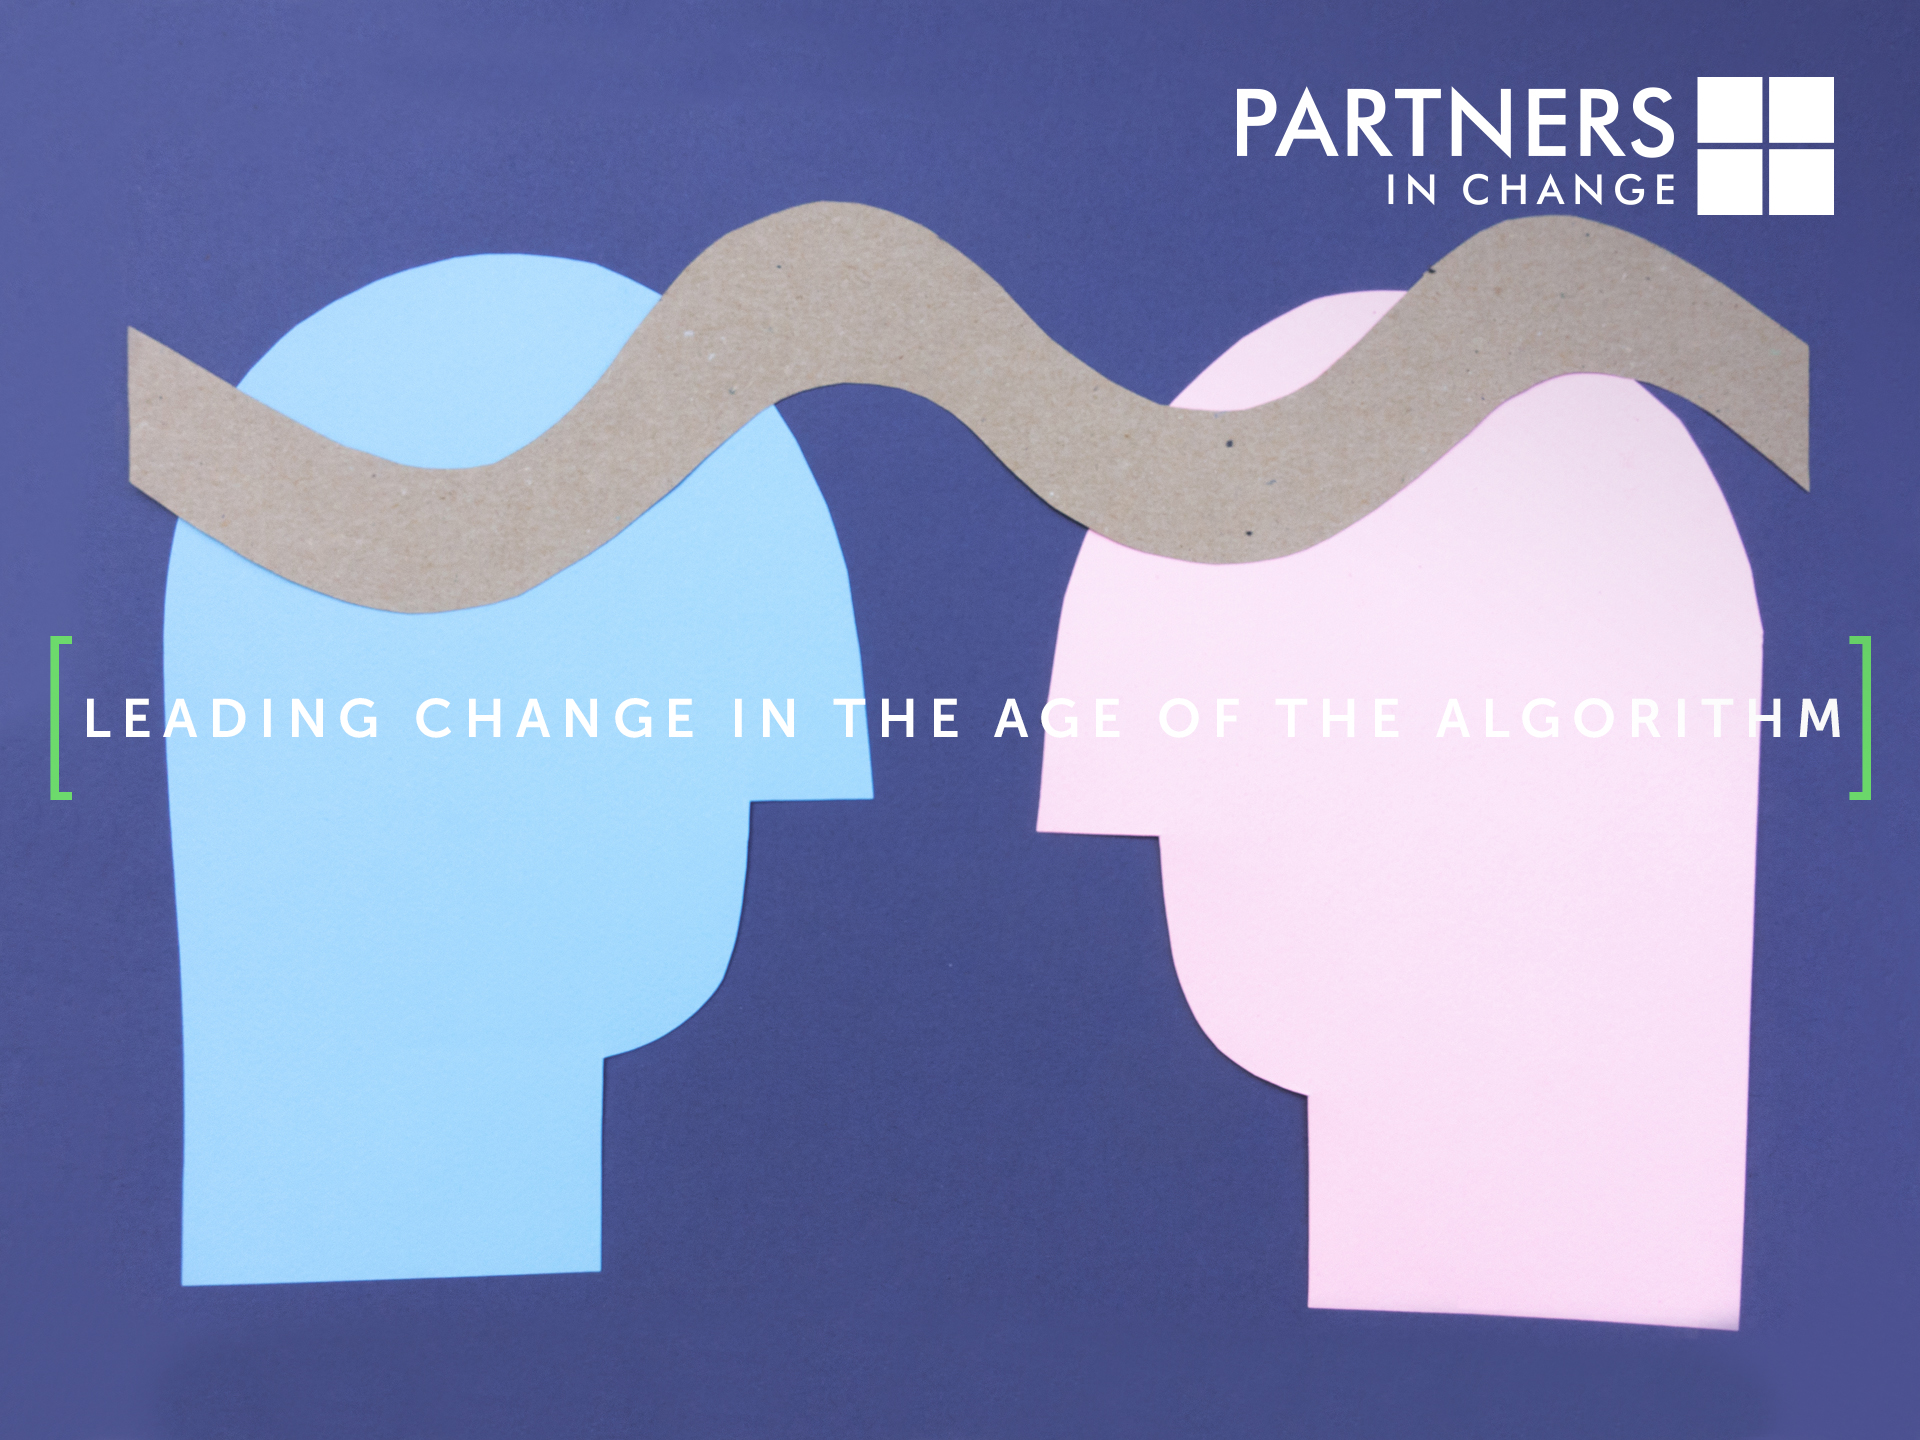 Leading change in the age of the algorithm.